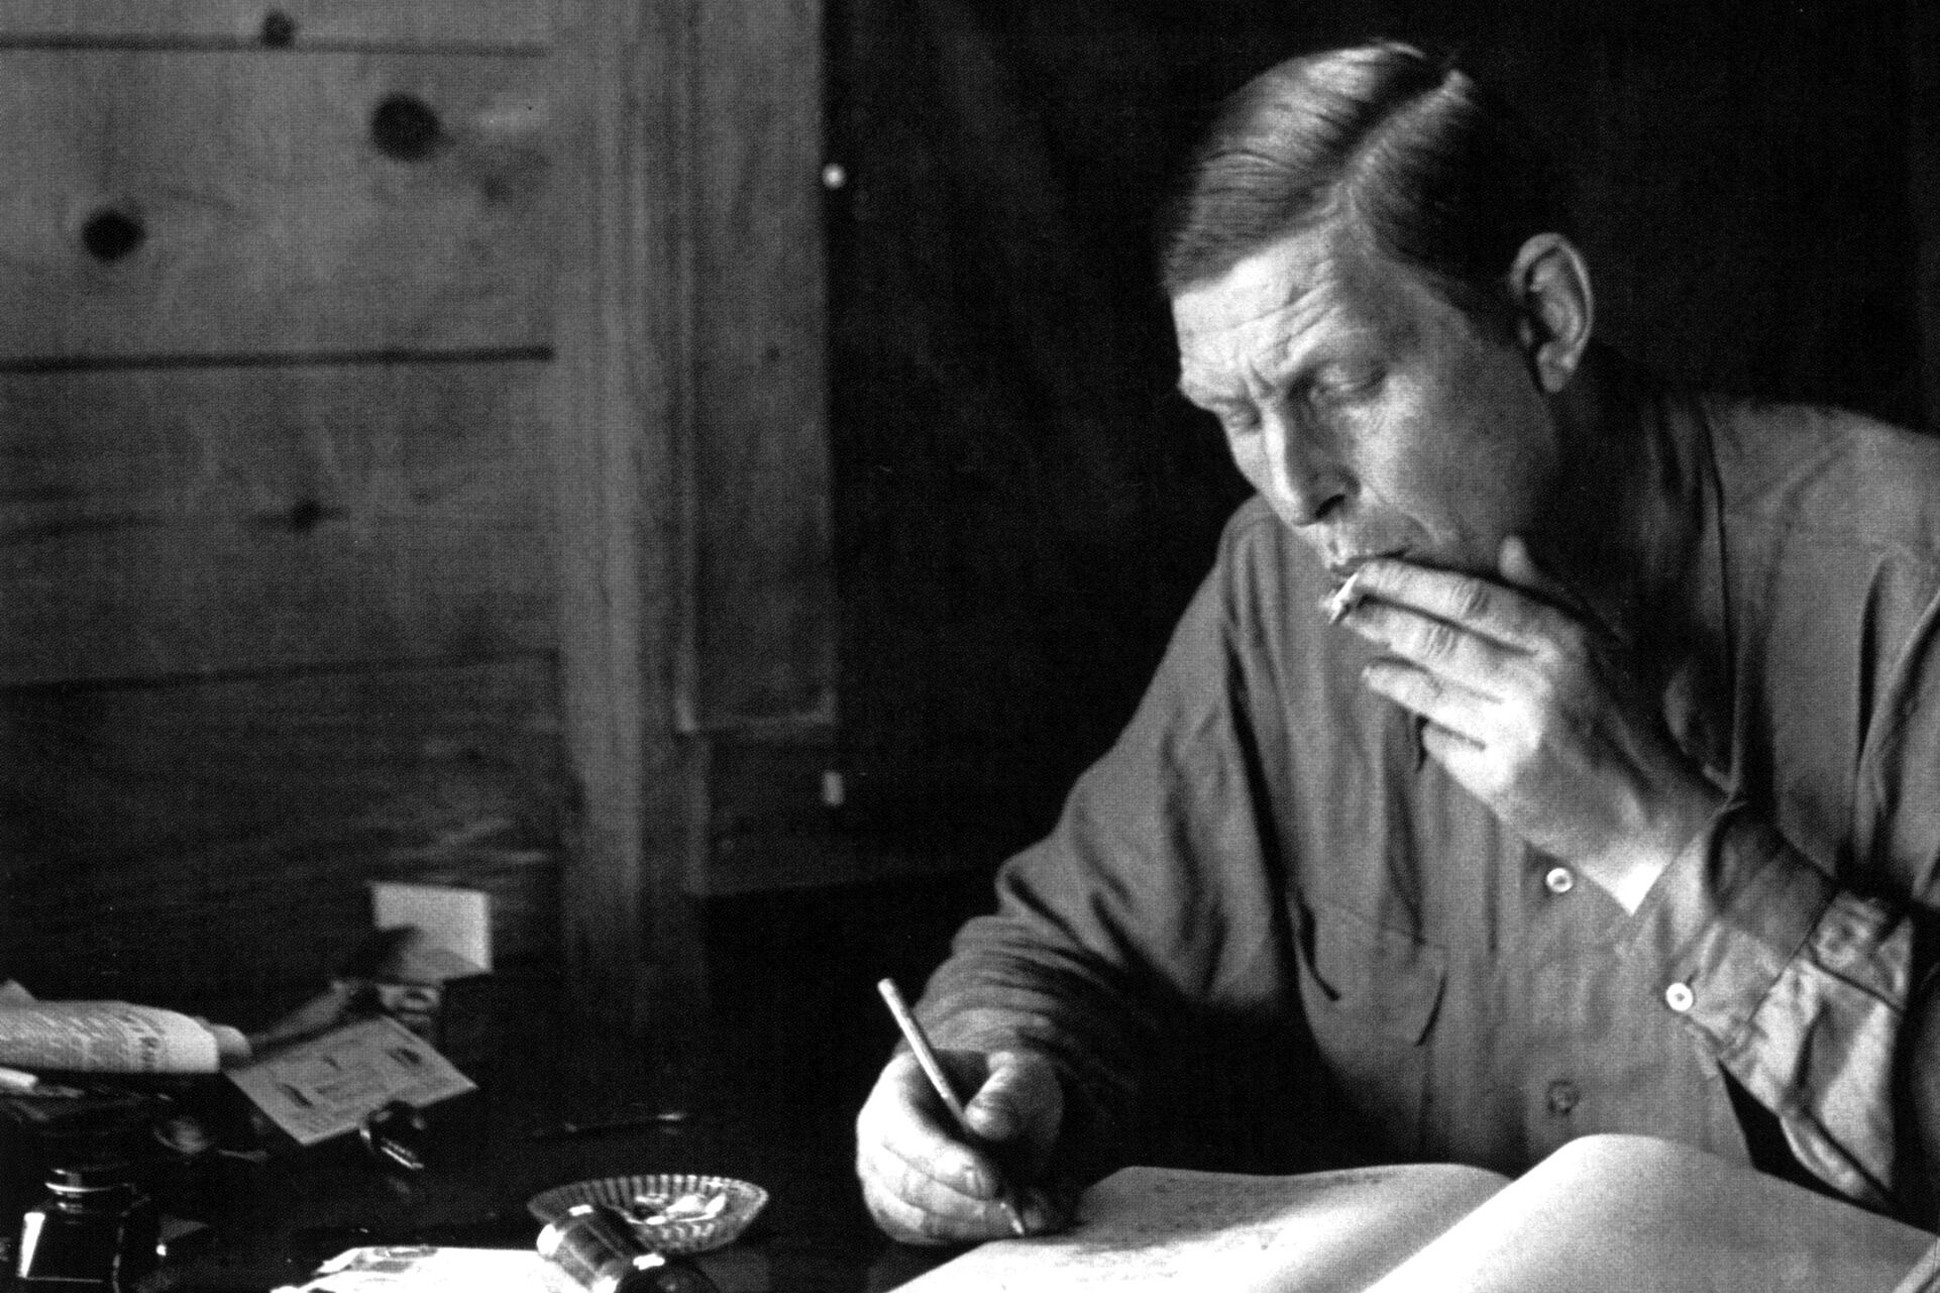 Black and white photograph of W.H. Auden smoking a cigarette and writing.